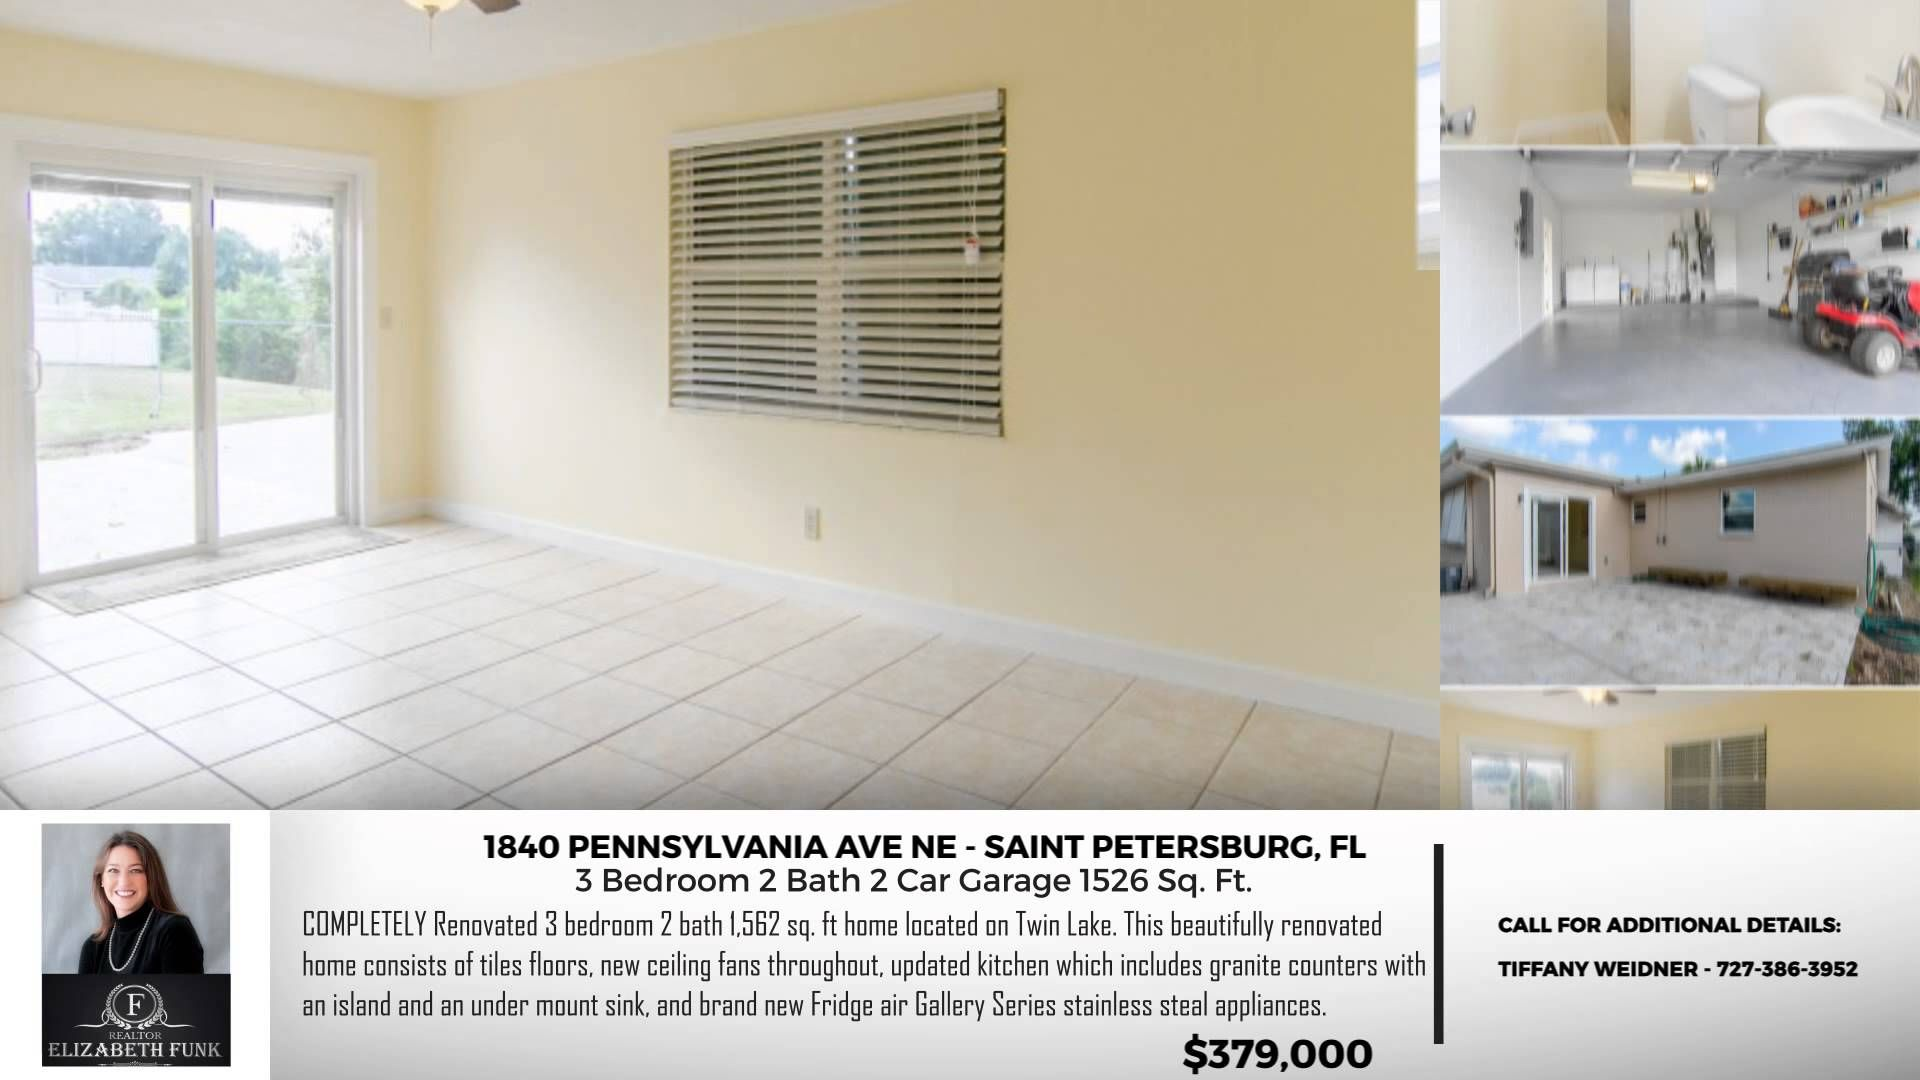 Home for sale in st petersburg 1840 pennsylvania ave ne saint elizabeth funk is your go to realtor in st 1840 pennsylvania ave ne located in the heart of saint petersburg fl close to downtown st pete an dailygadgetfo Image collections